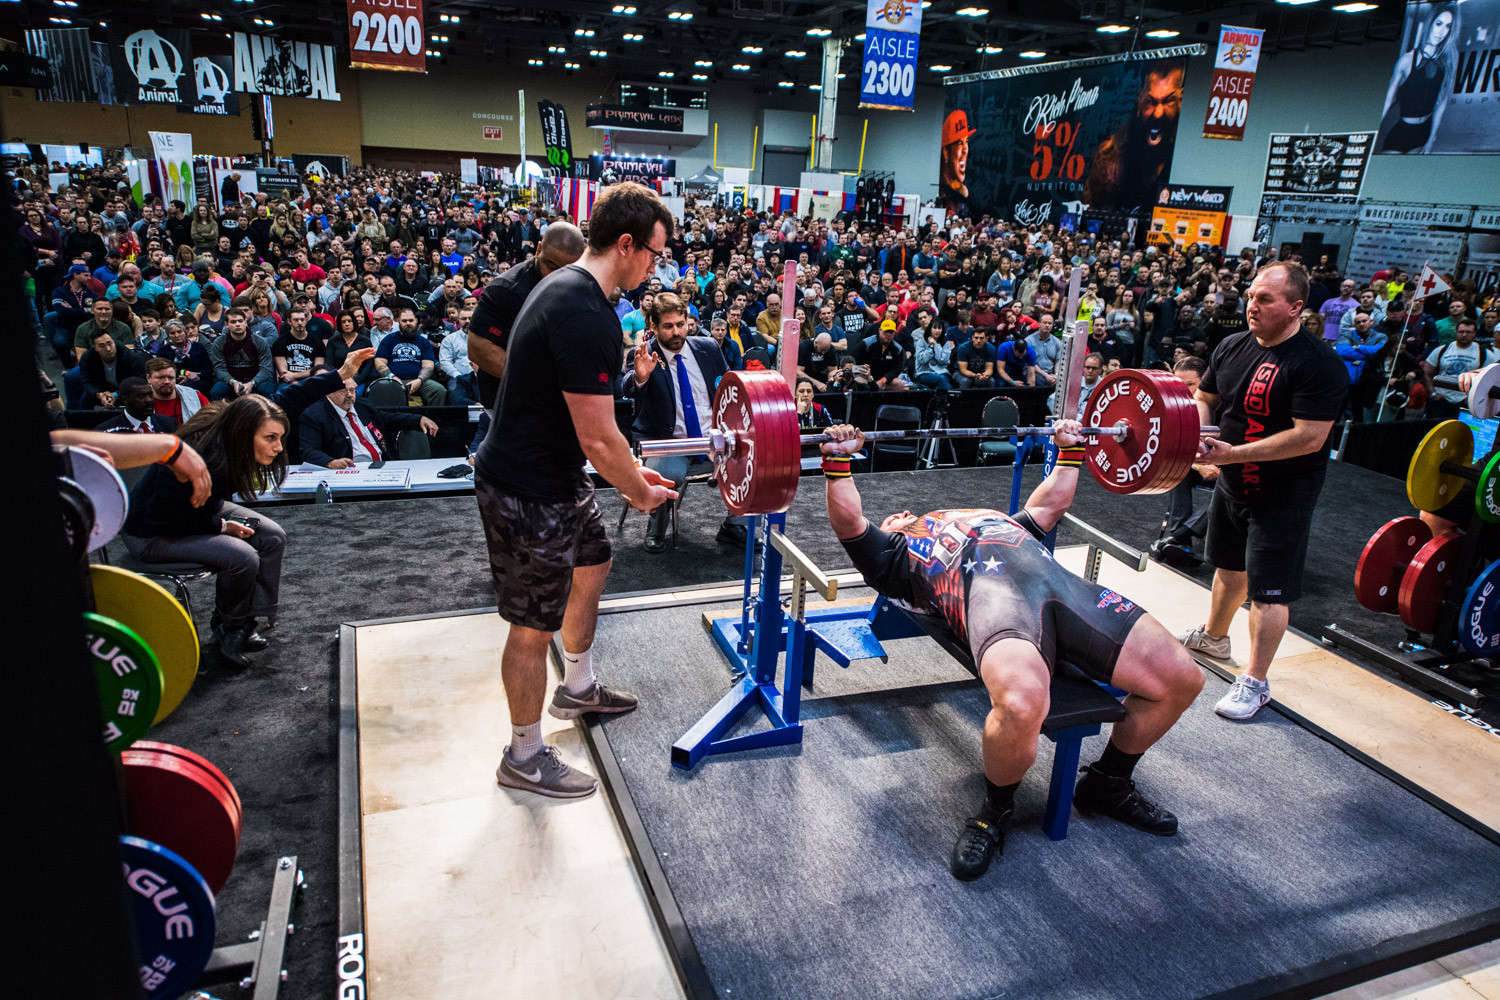 USA Powerlifting has 20,000 registered members and is the sport's dominant country ©USAPL